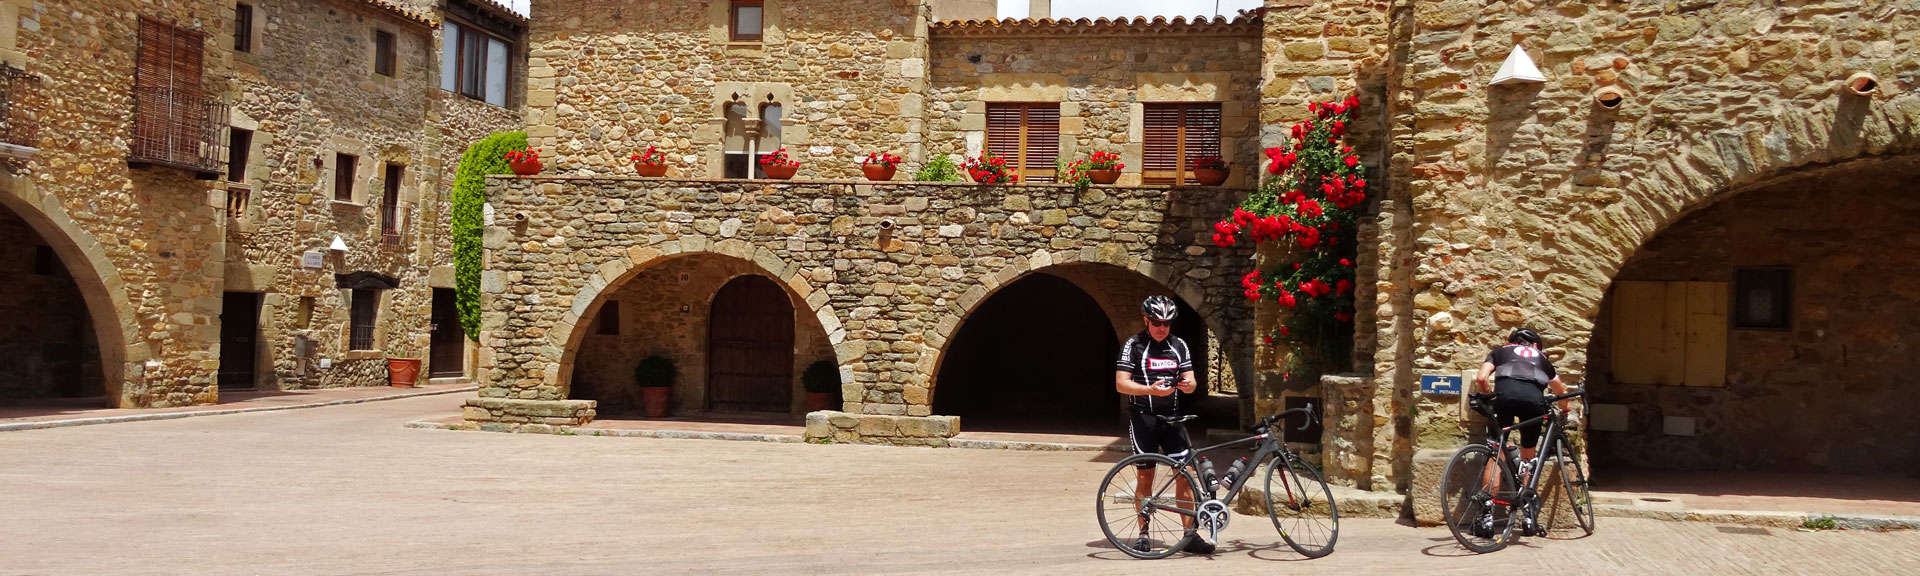 Guided rides in Girona - The Medieval Emporda - Monells